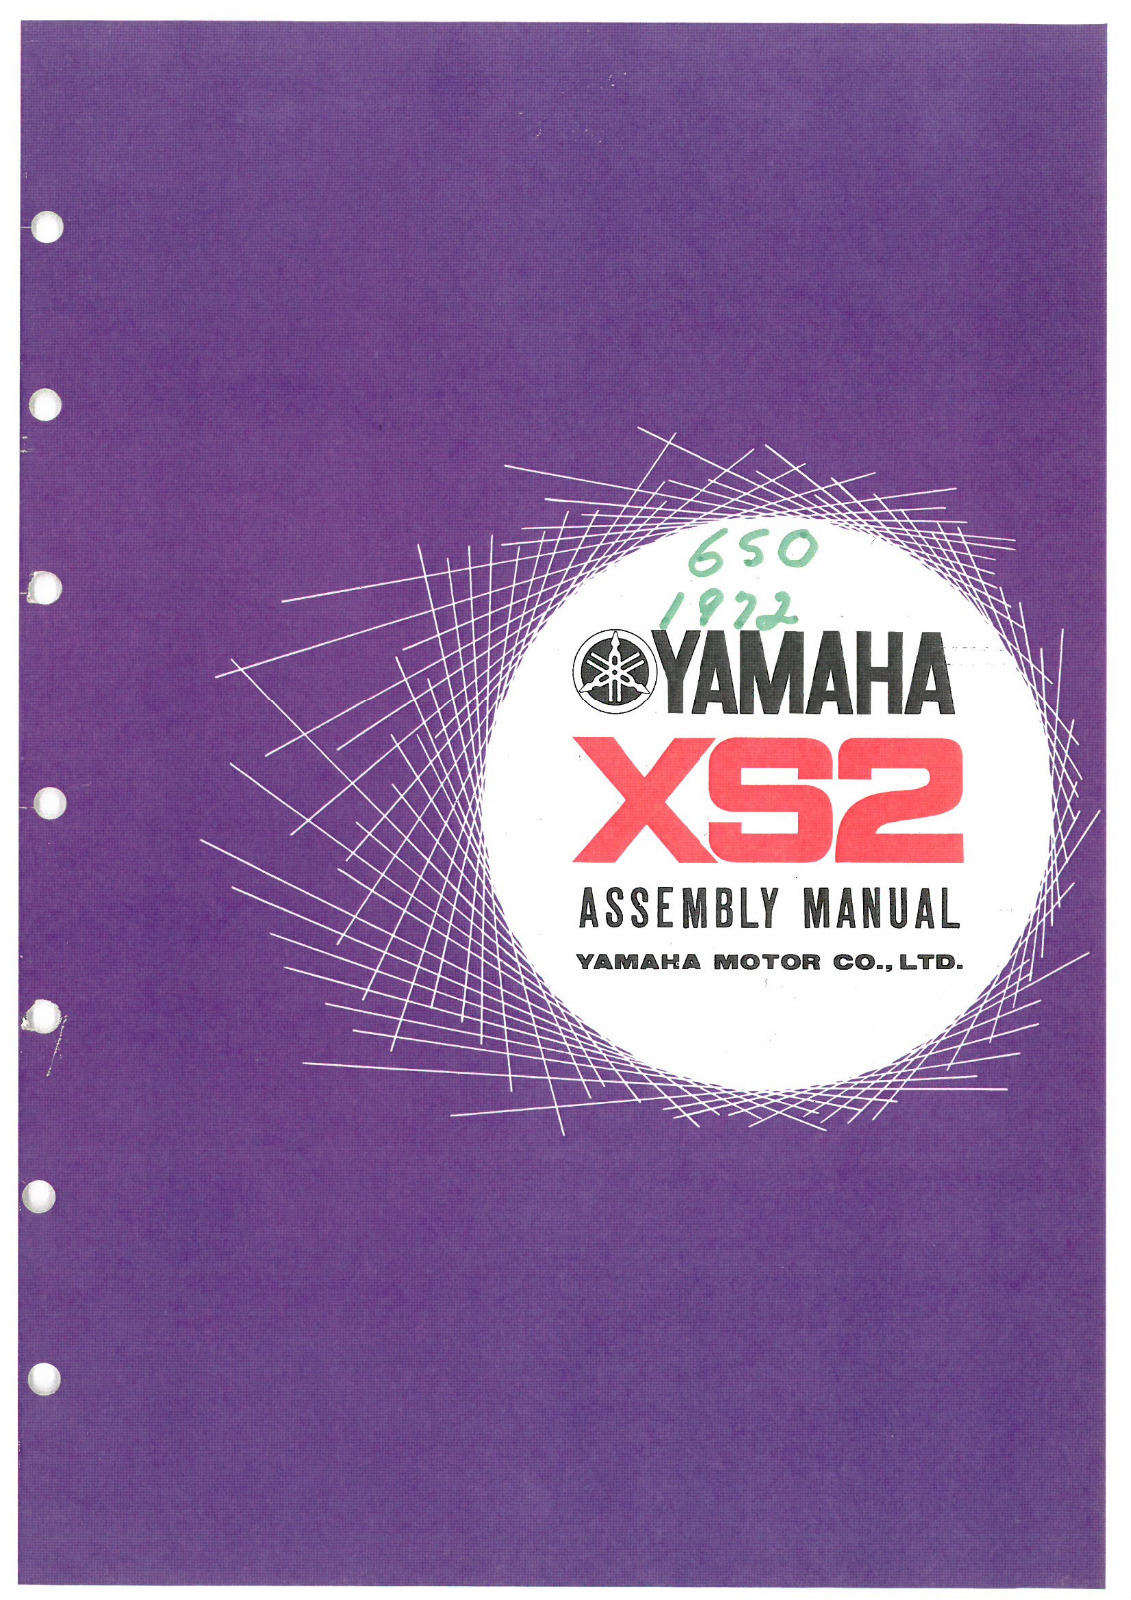 web 72 xs2 wiring diagram yamaha xs2 parts \u2022 indy500 co XS2 Bow String at gsmportal.co